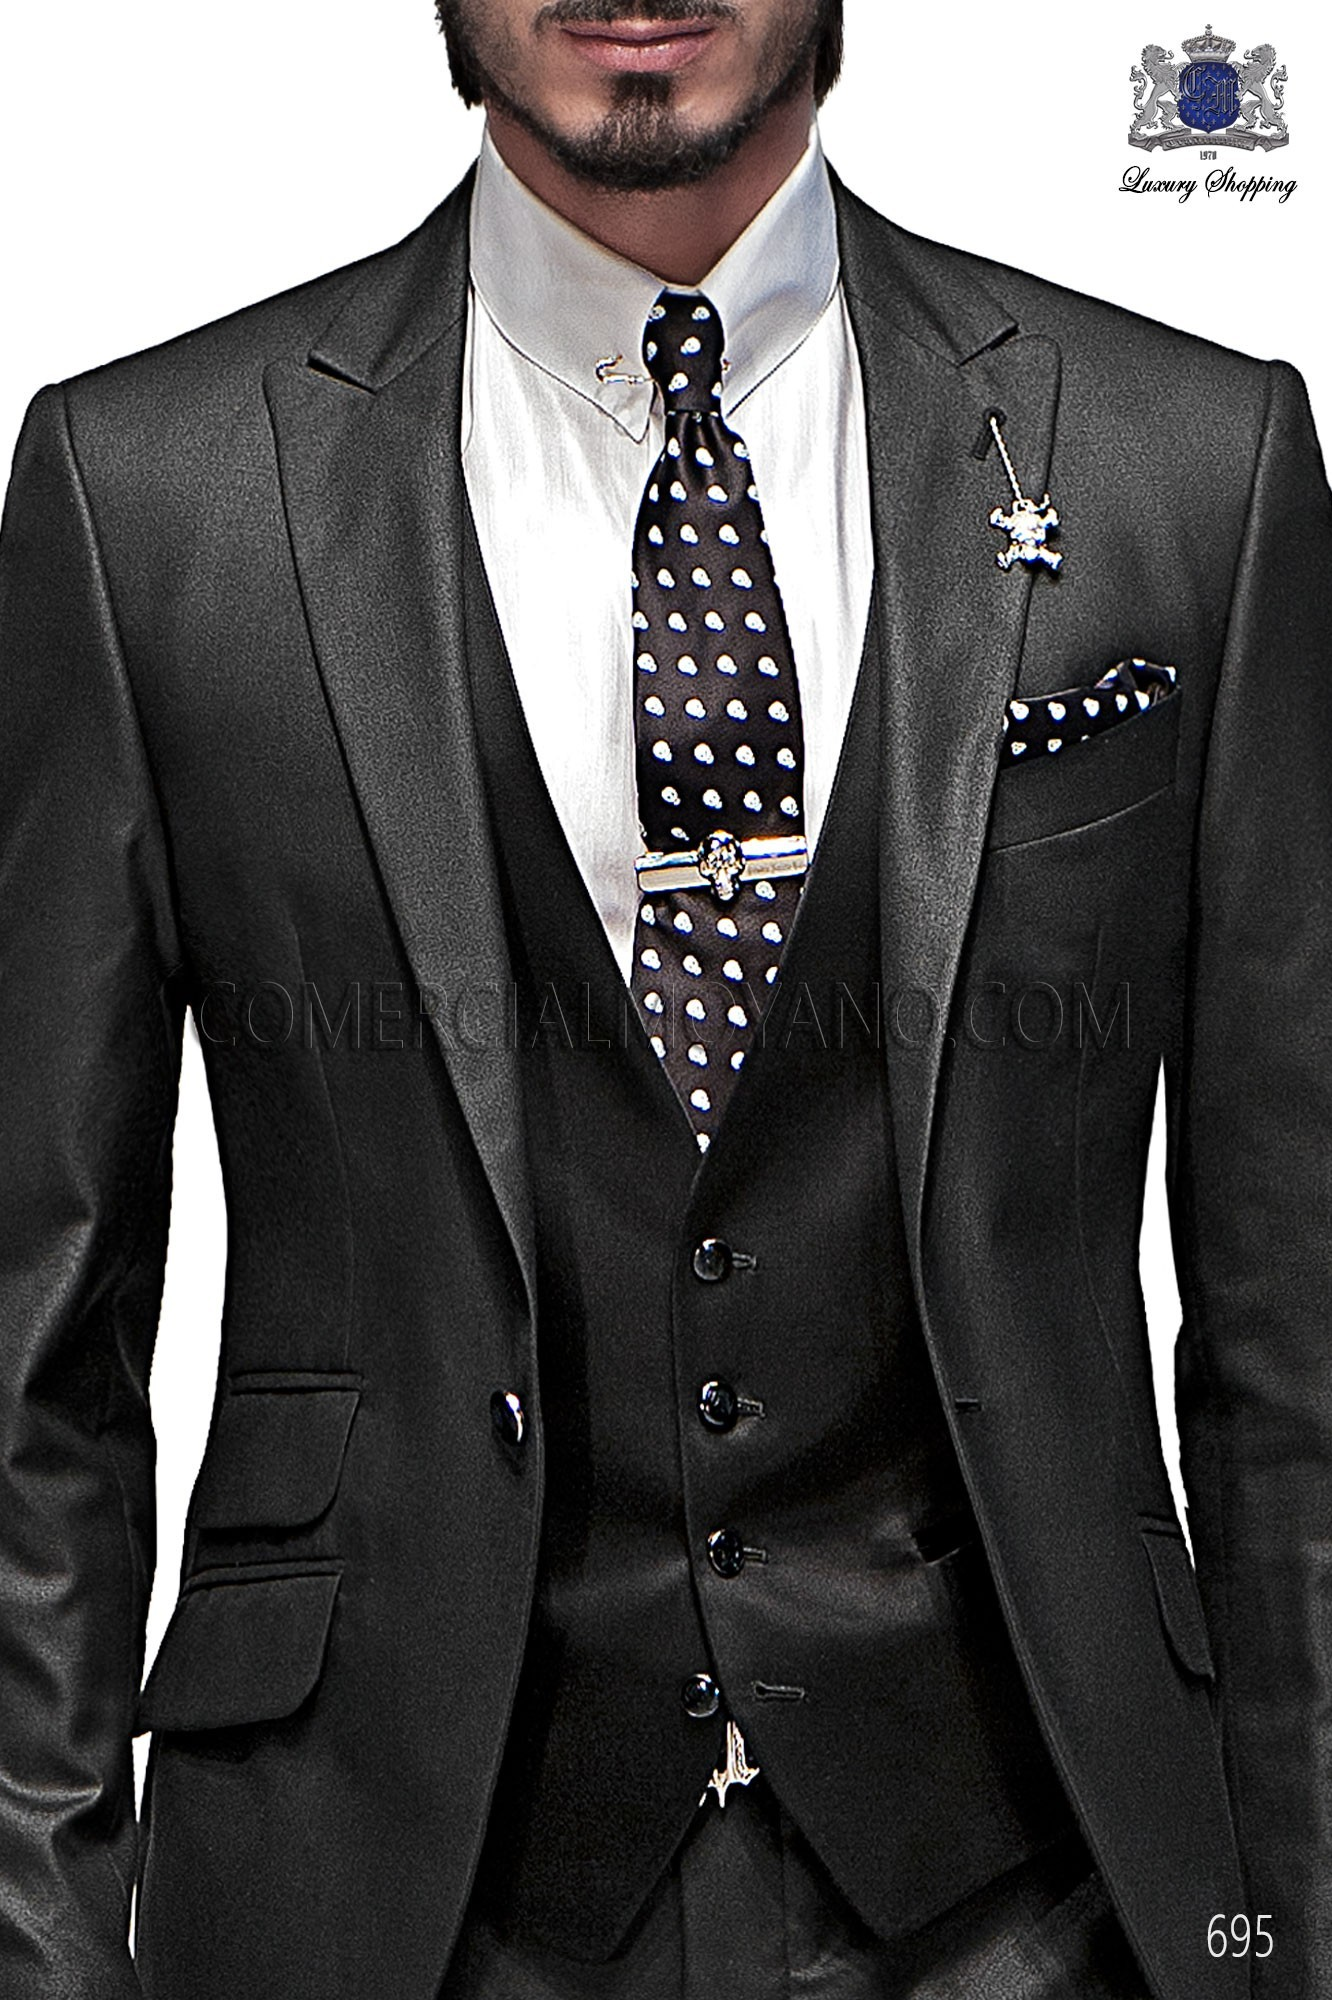 High Fashion Emotion black men wedding suit, model: 695 Ottavio ...